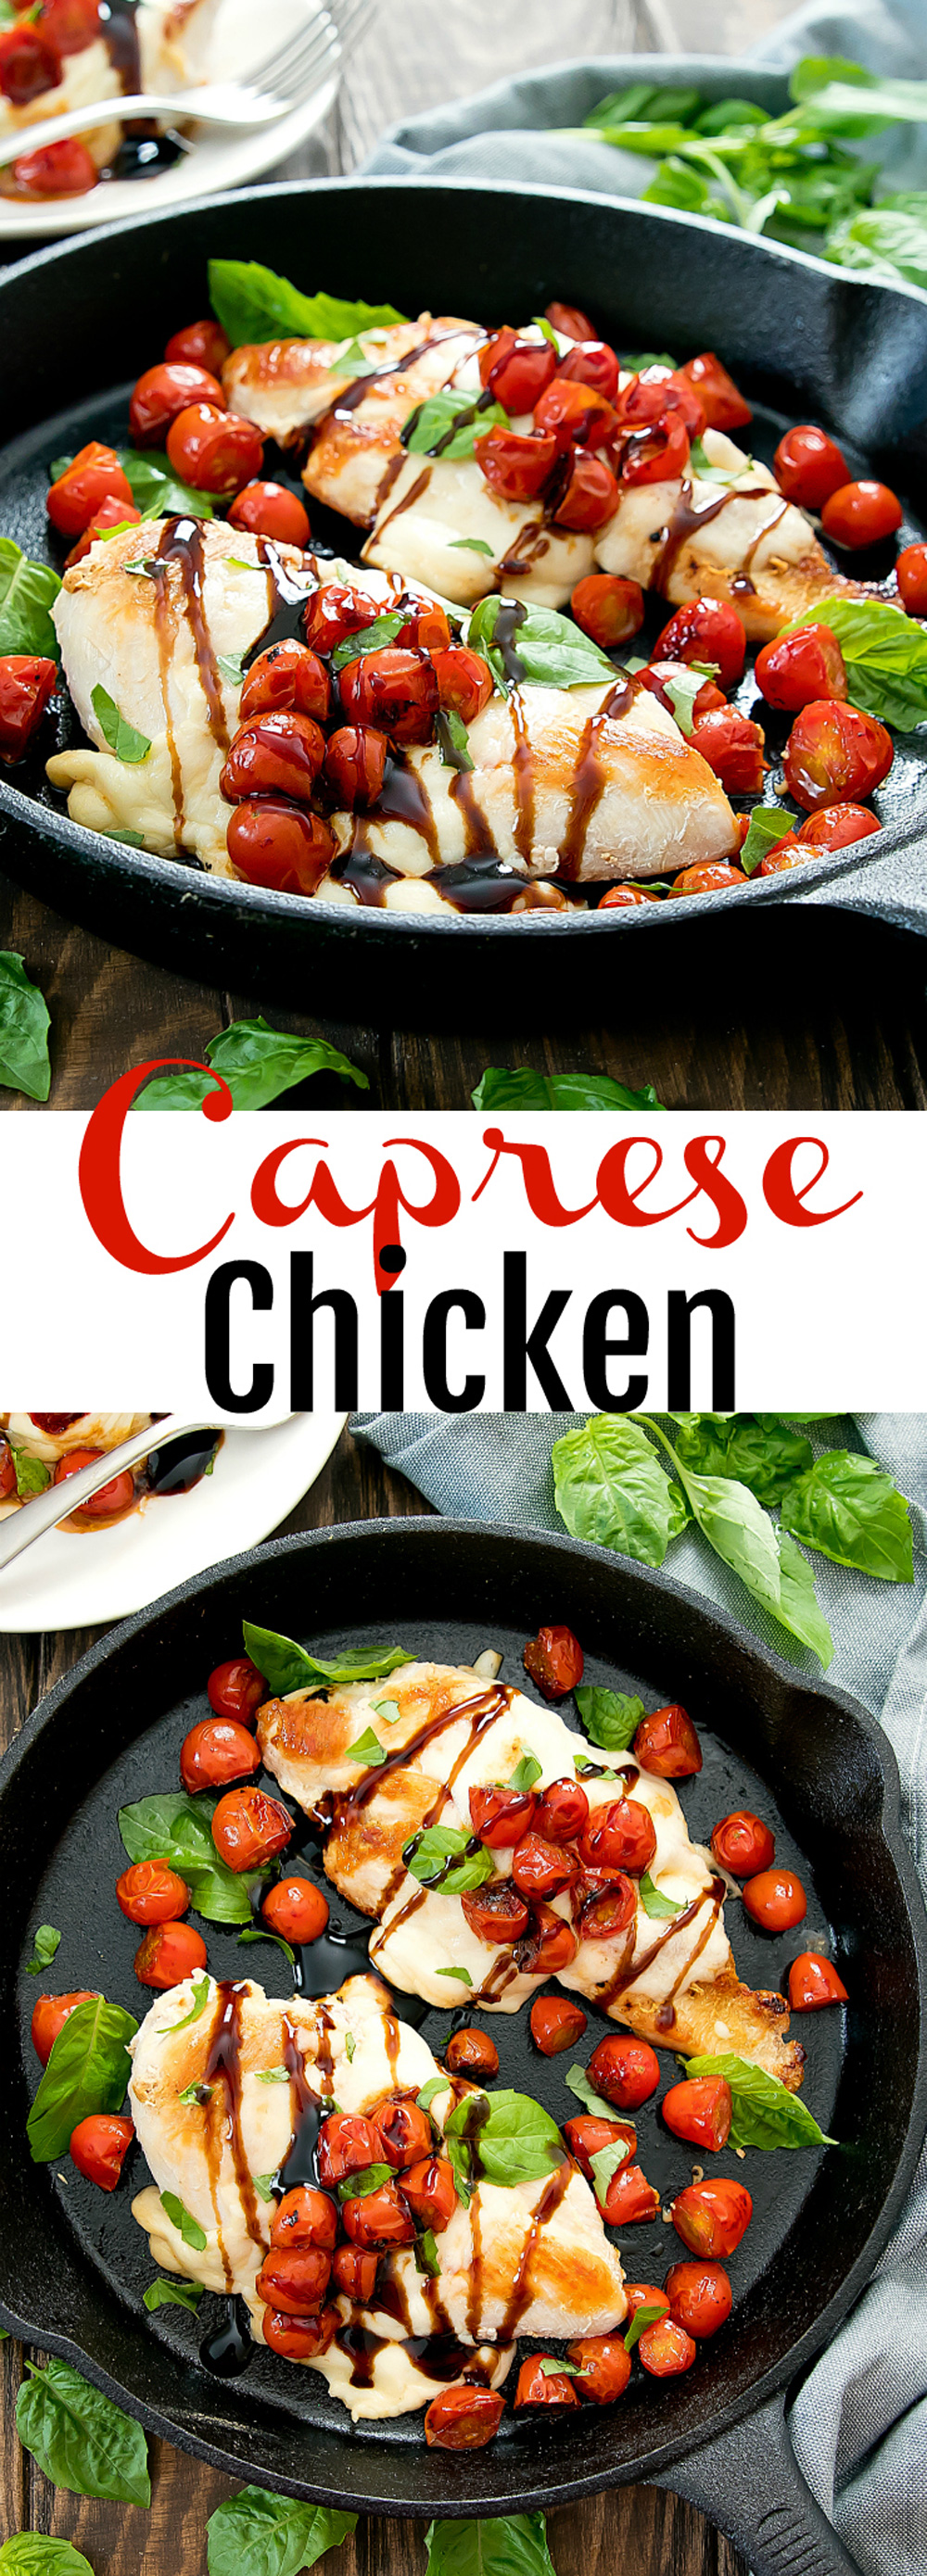 Caprese Chicken. An fun spin on caprese salad. This dish is flavorful, easy, cooks in one pan and is ready in less than 30 minutes.